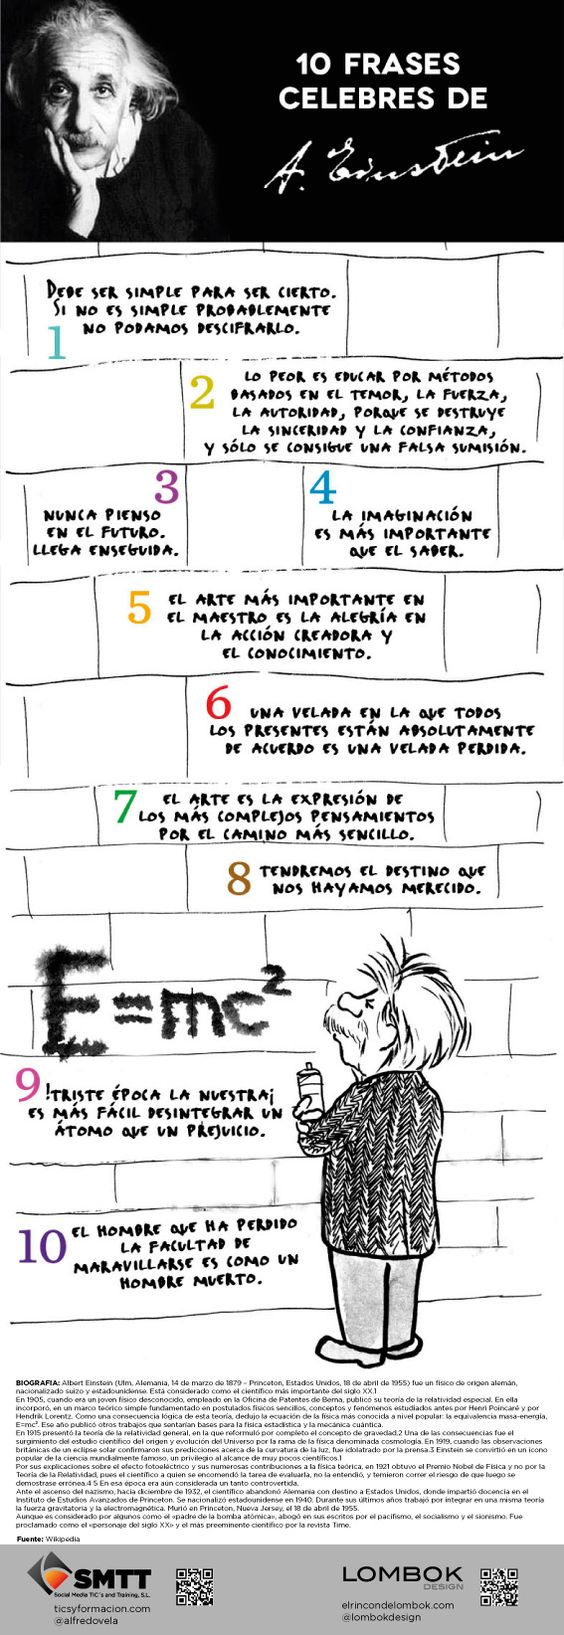 10 Famous Quotes from Einstein, by SMTT (Spain)